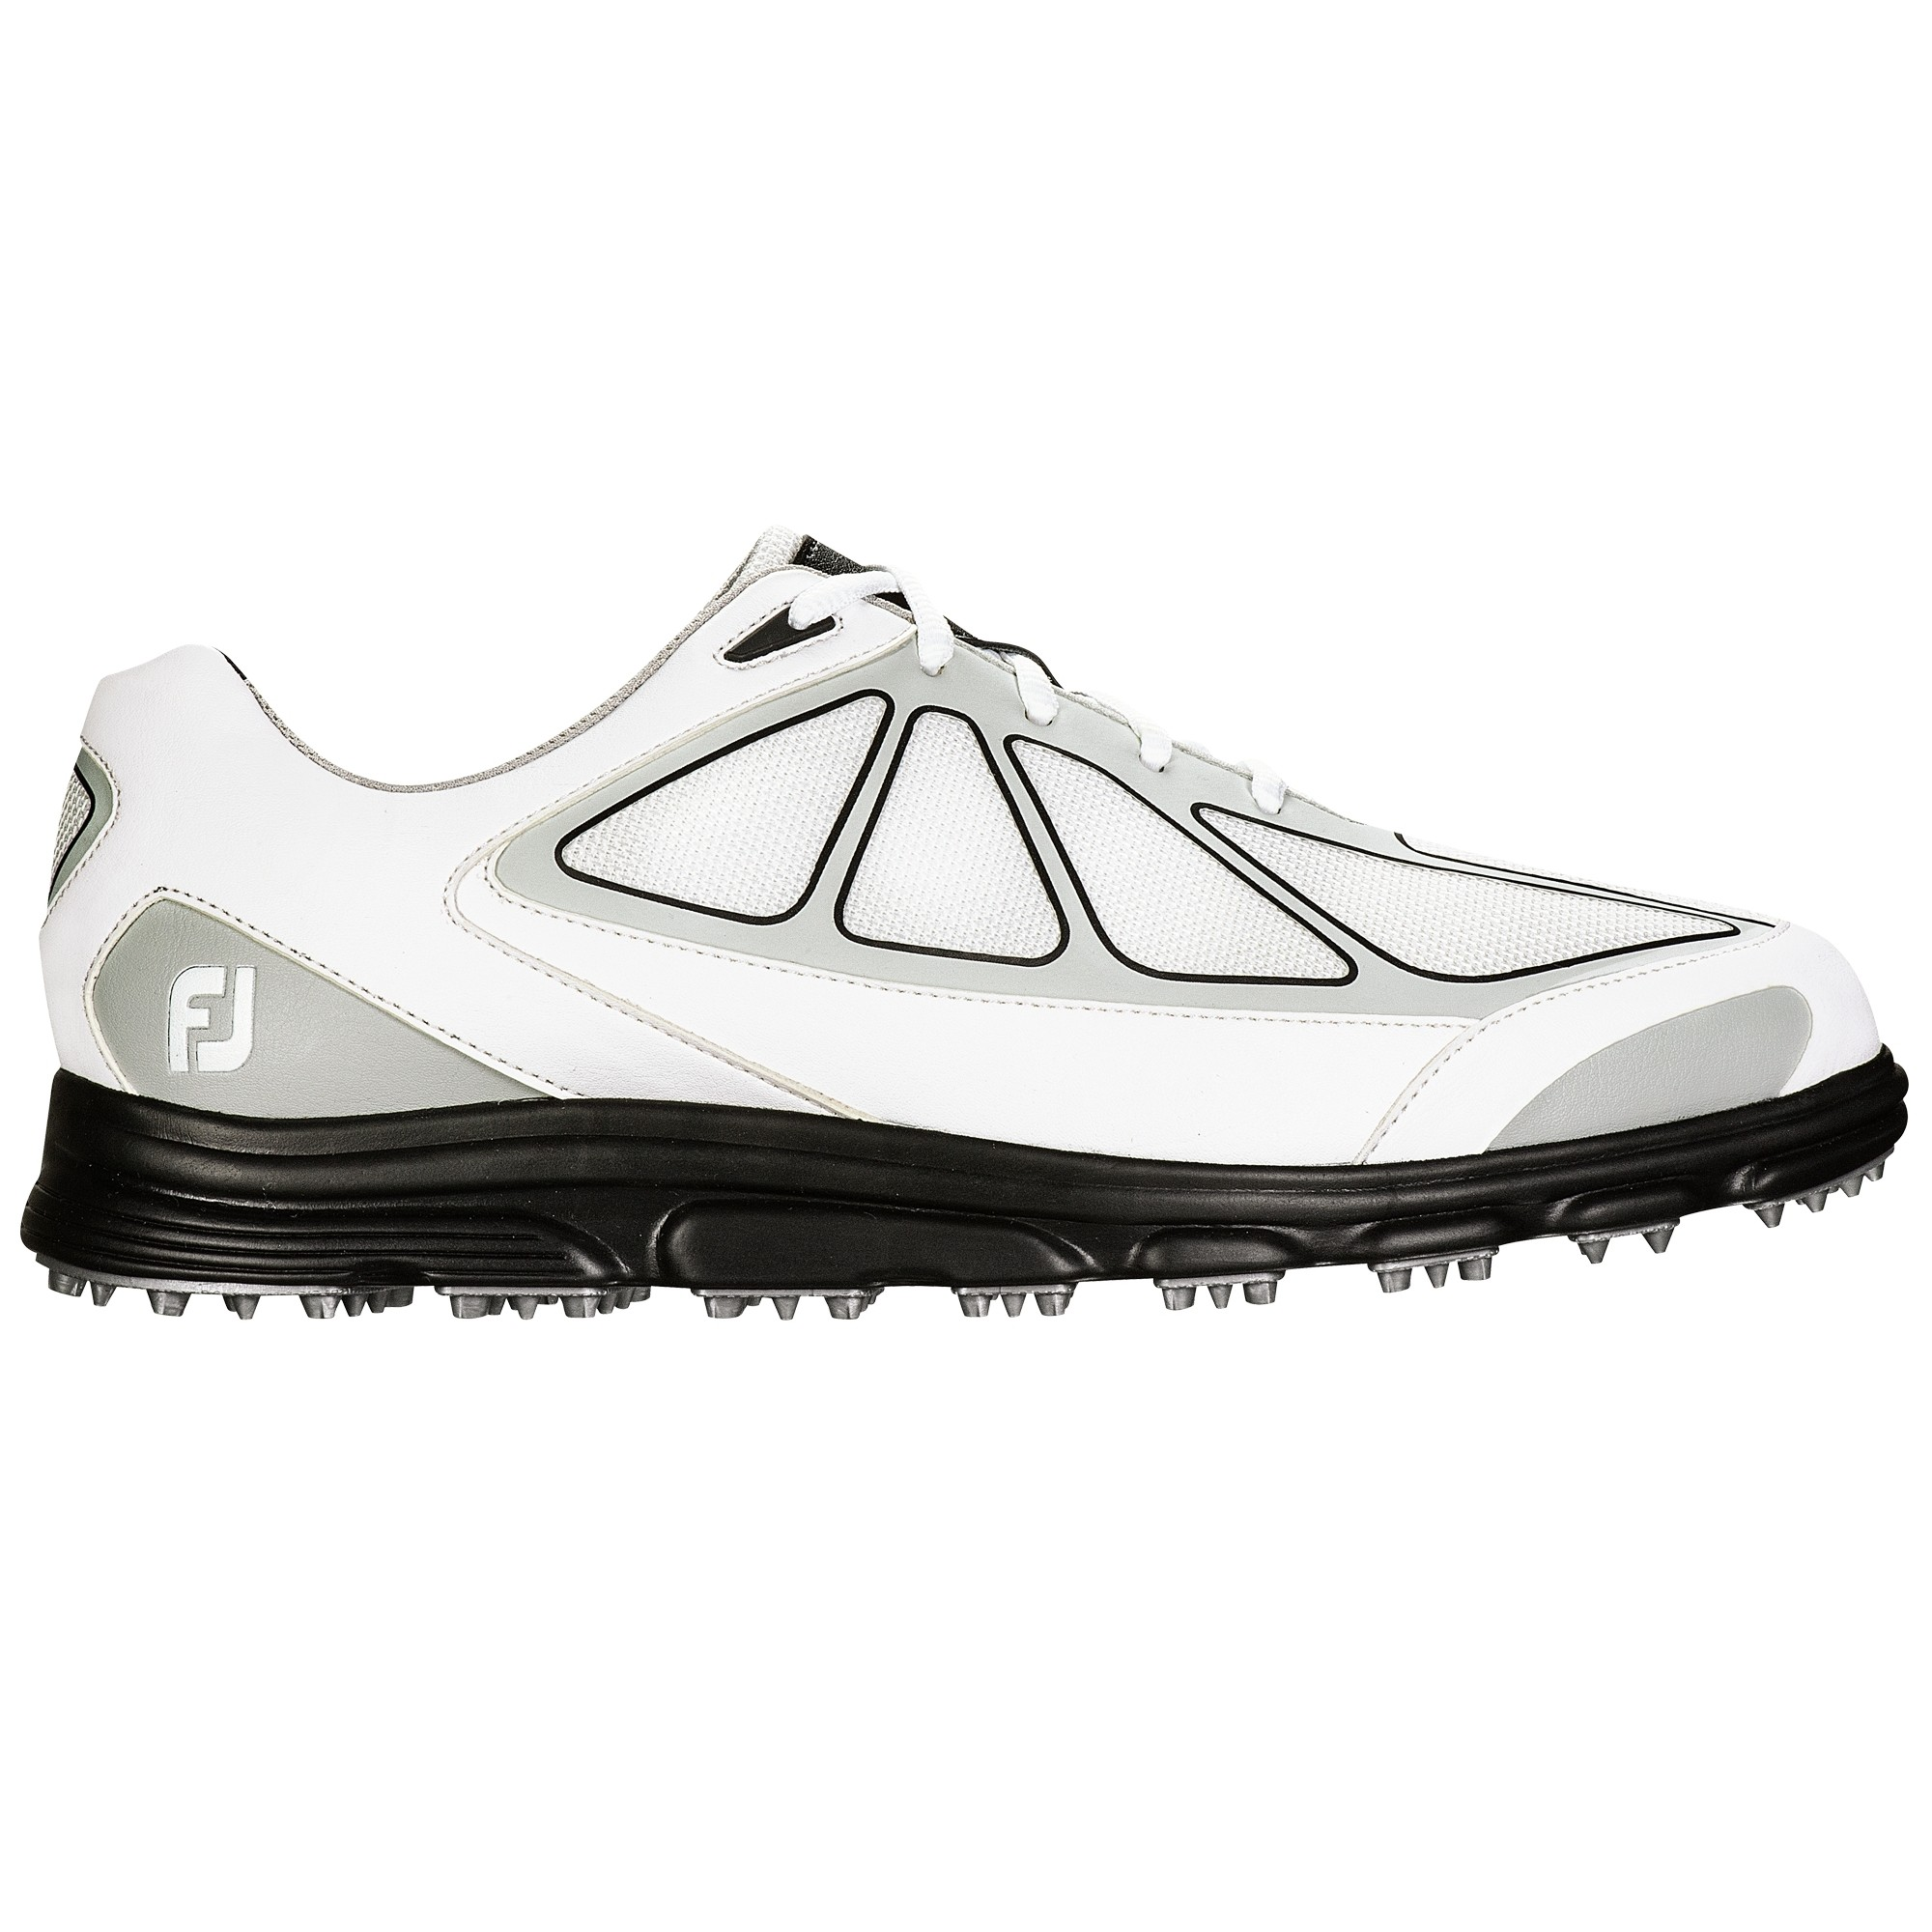 footjoy superlites spikeless golf shoes mens closeout